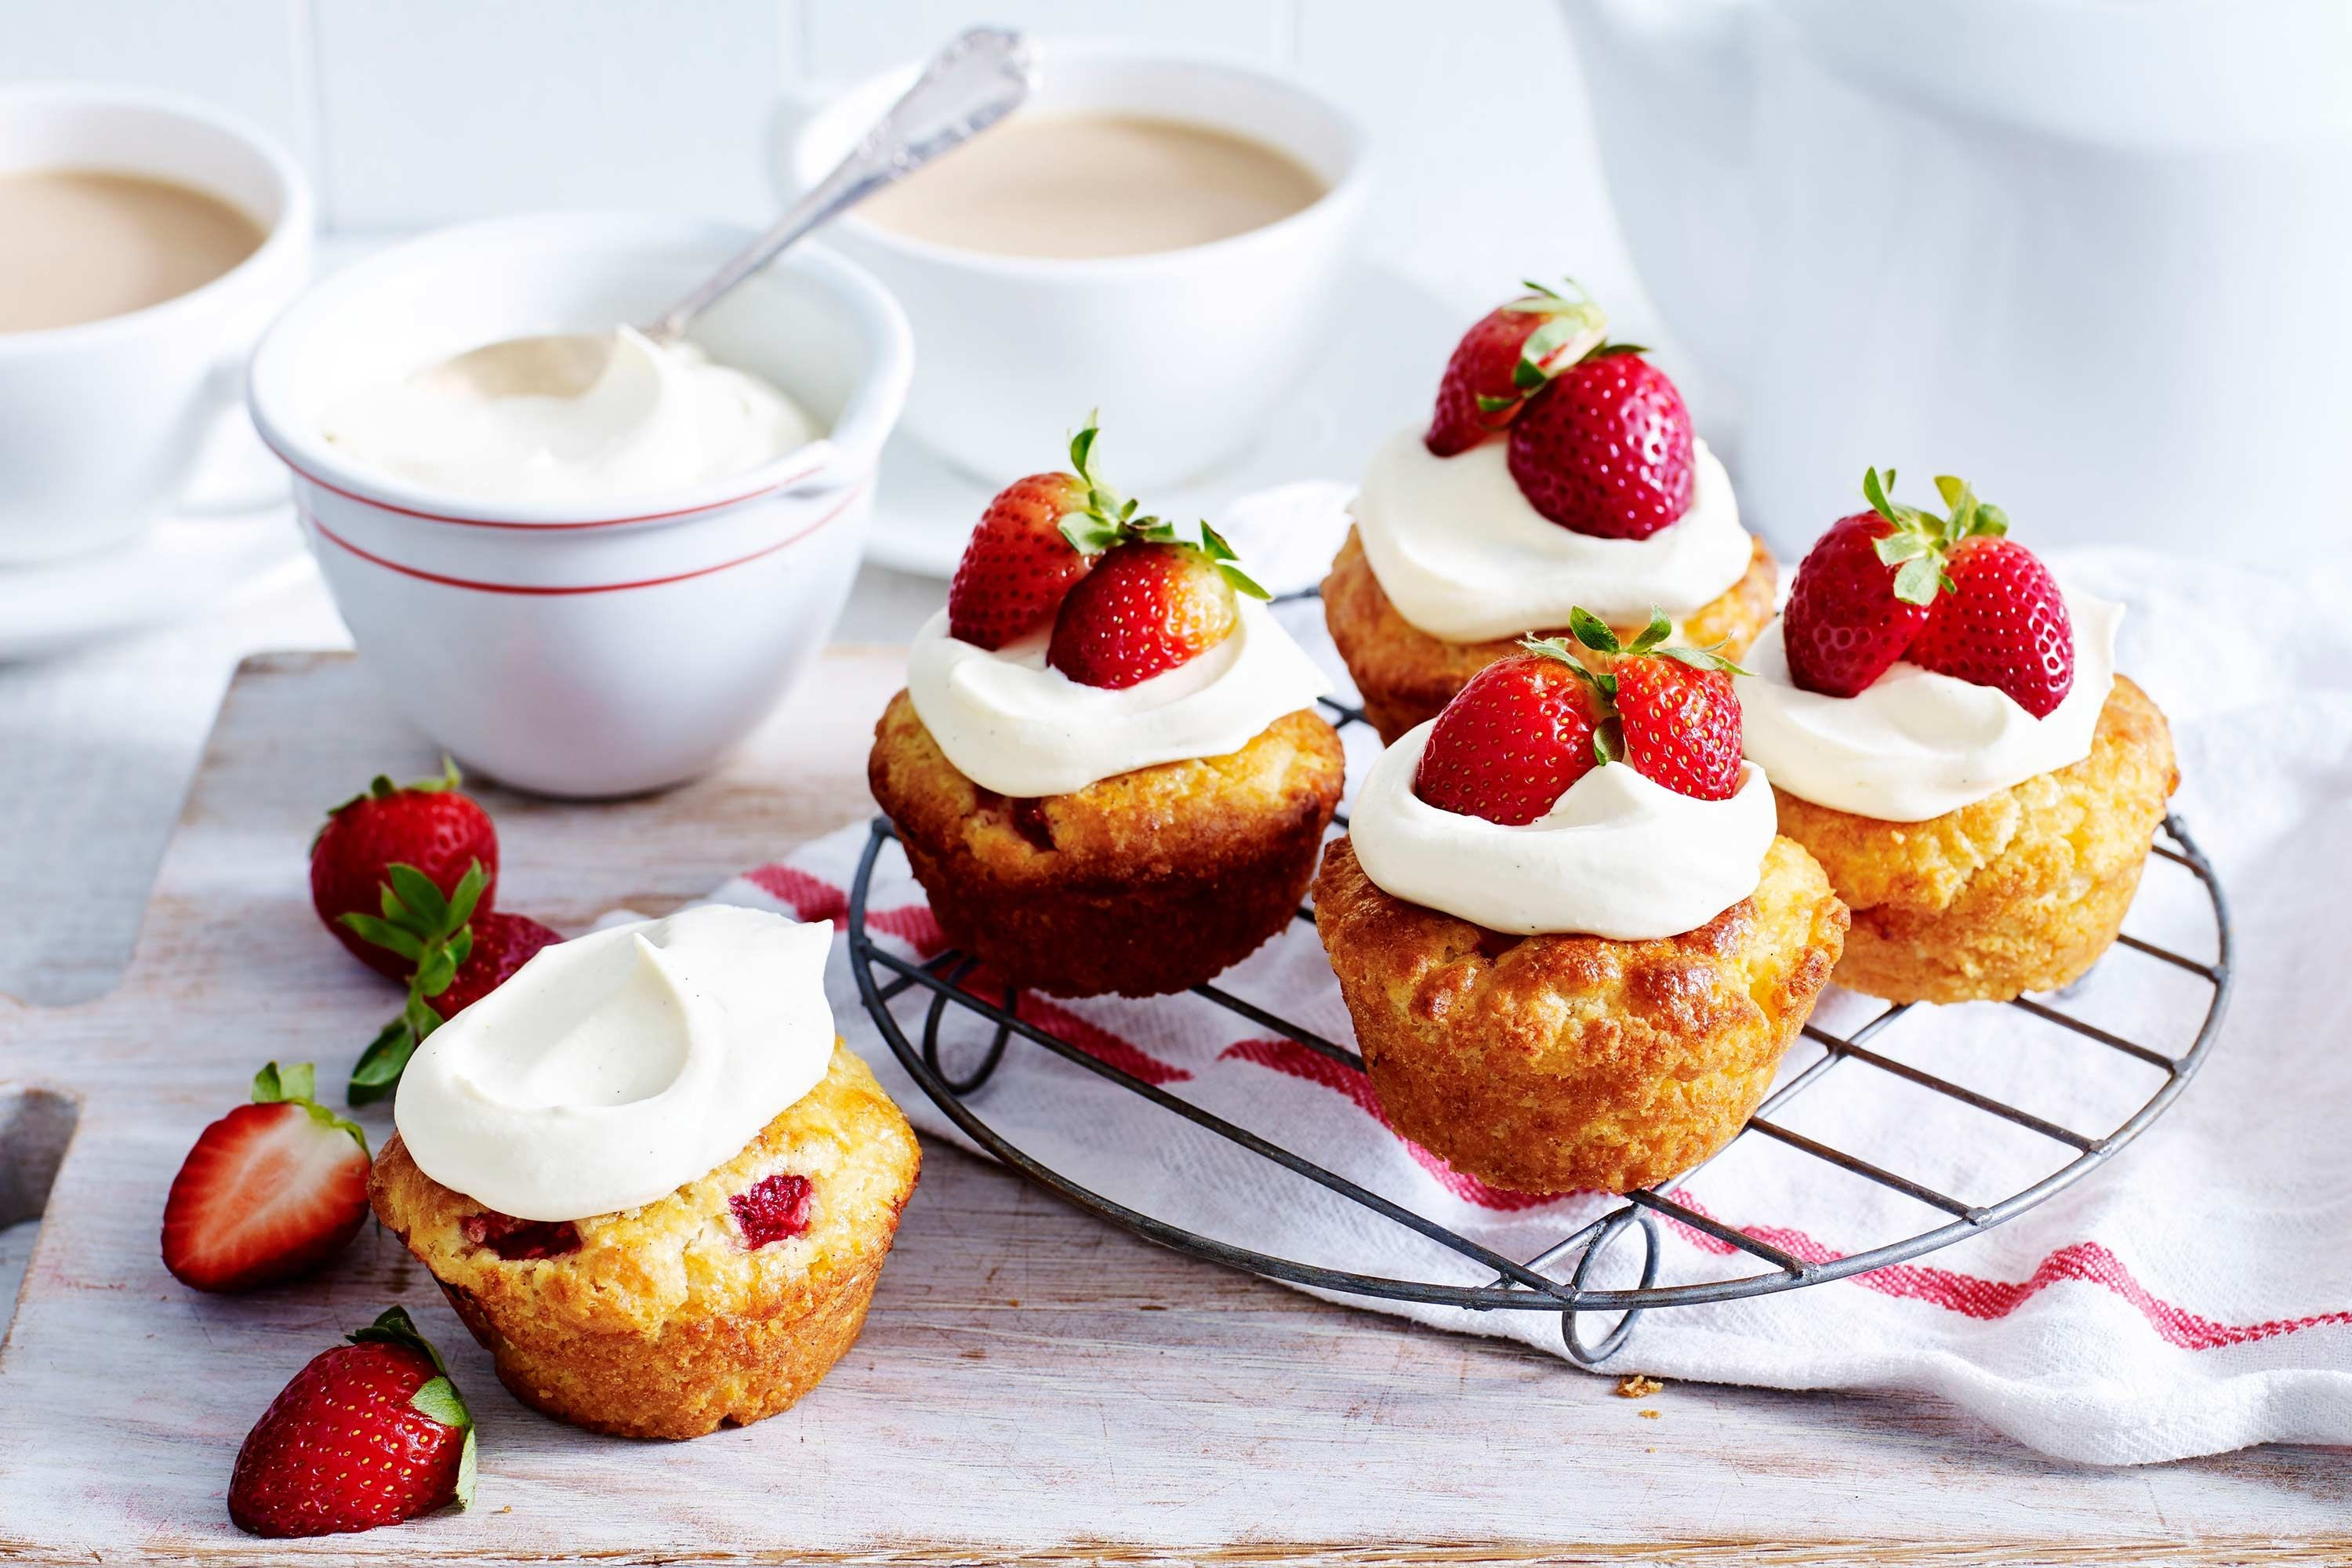 Strawberry scone cakes